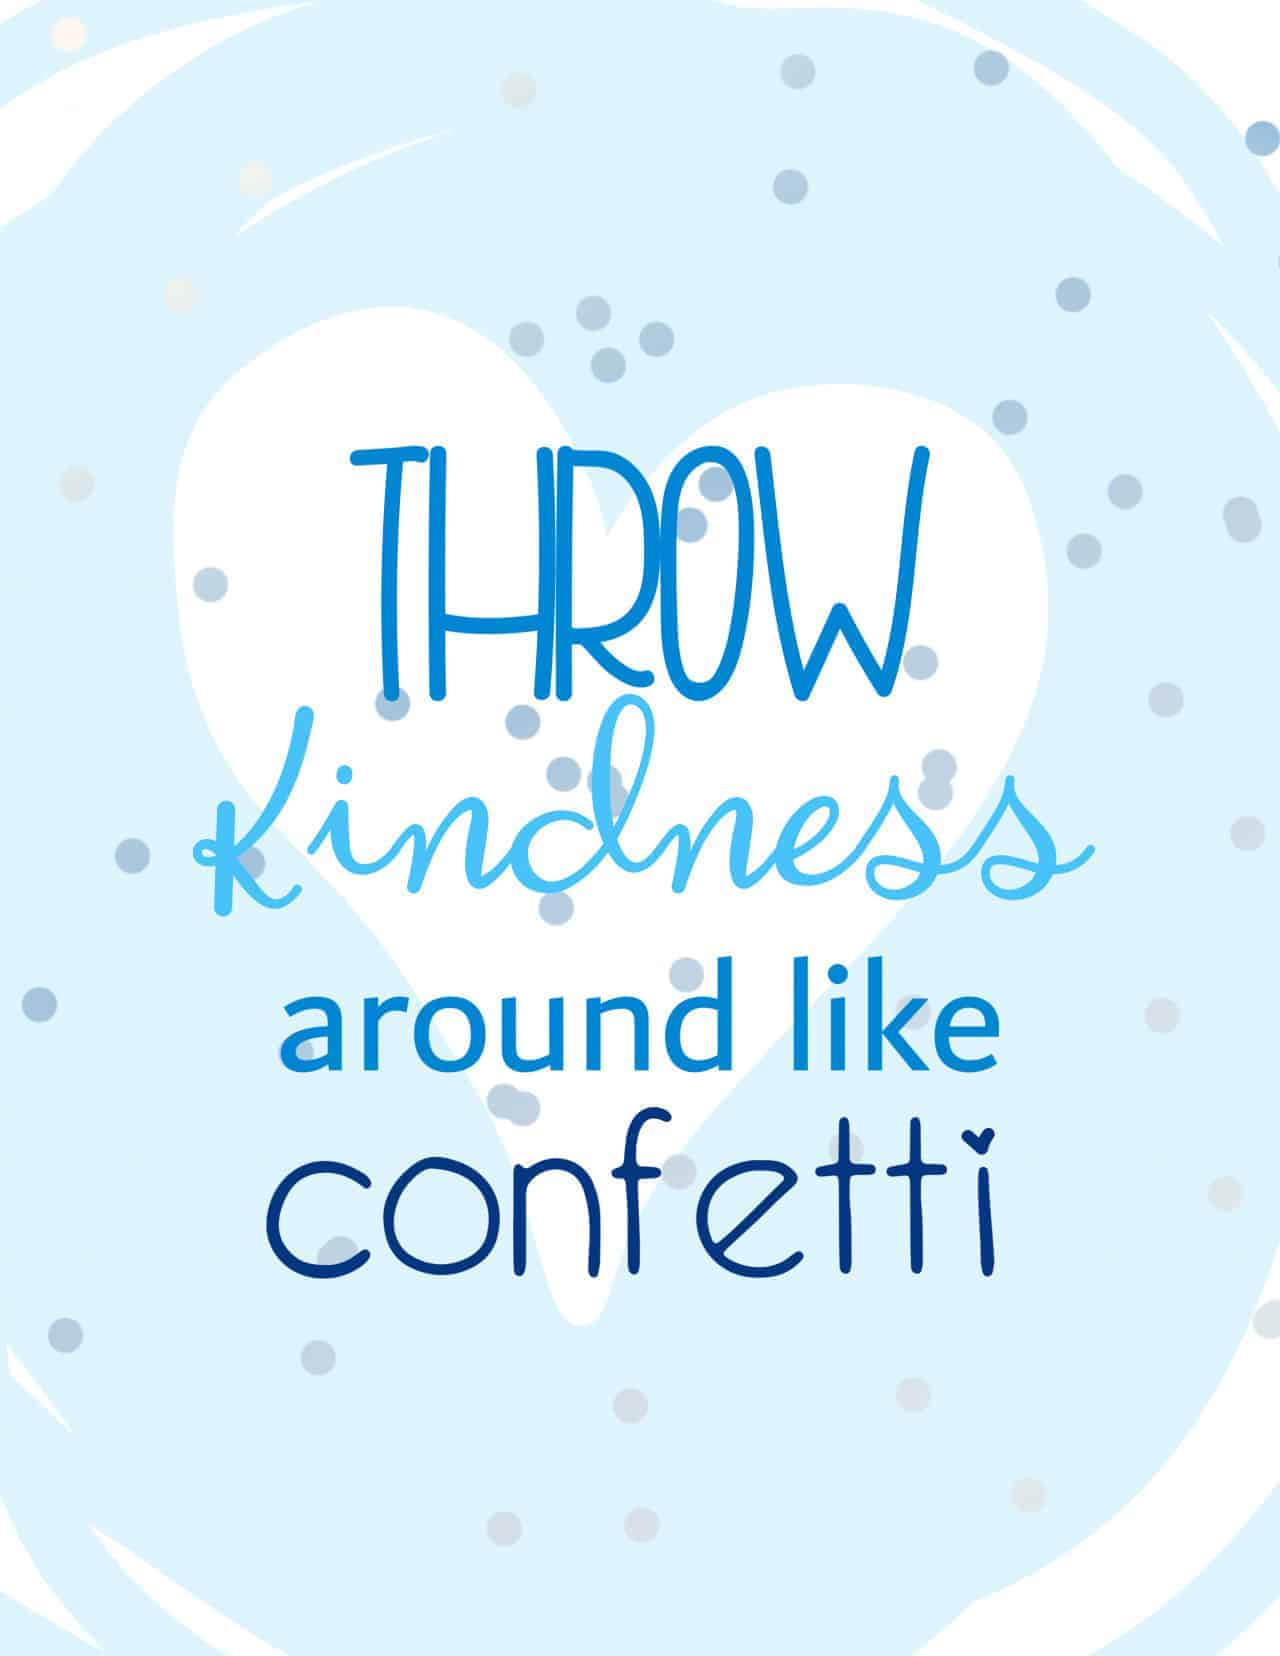 Throw kindness around like confetti blue letter on white background with pale blue heart shaped cutout and bluish confetti - free printable